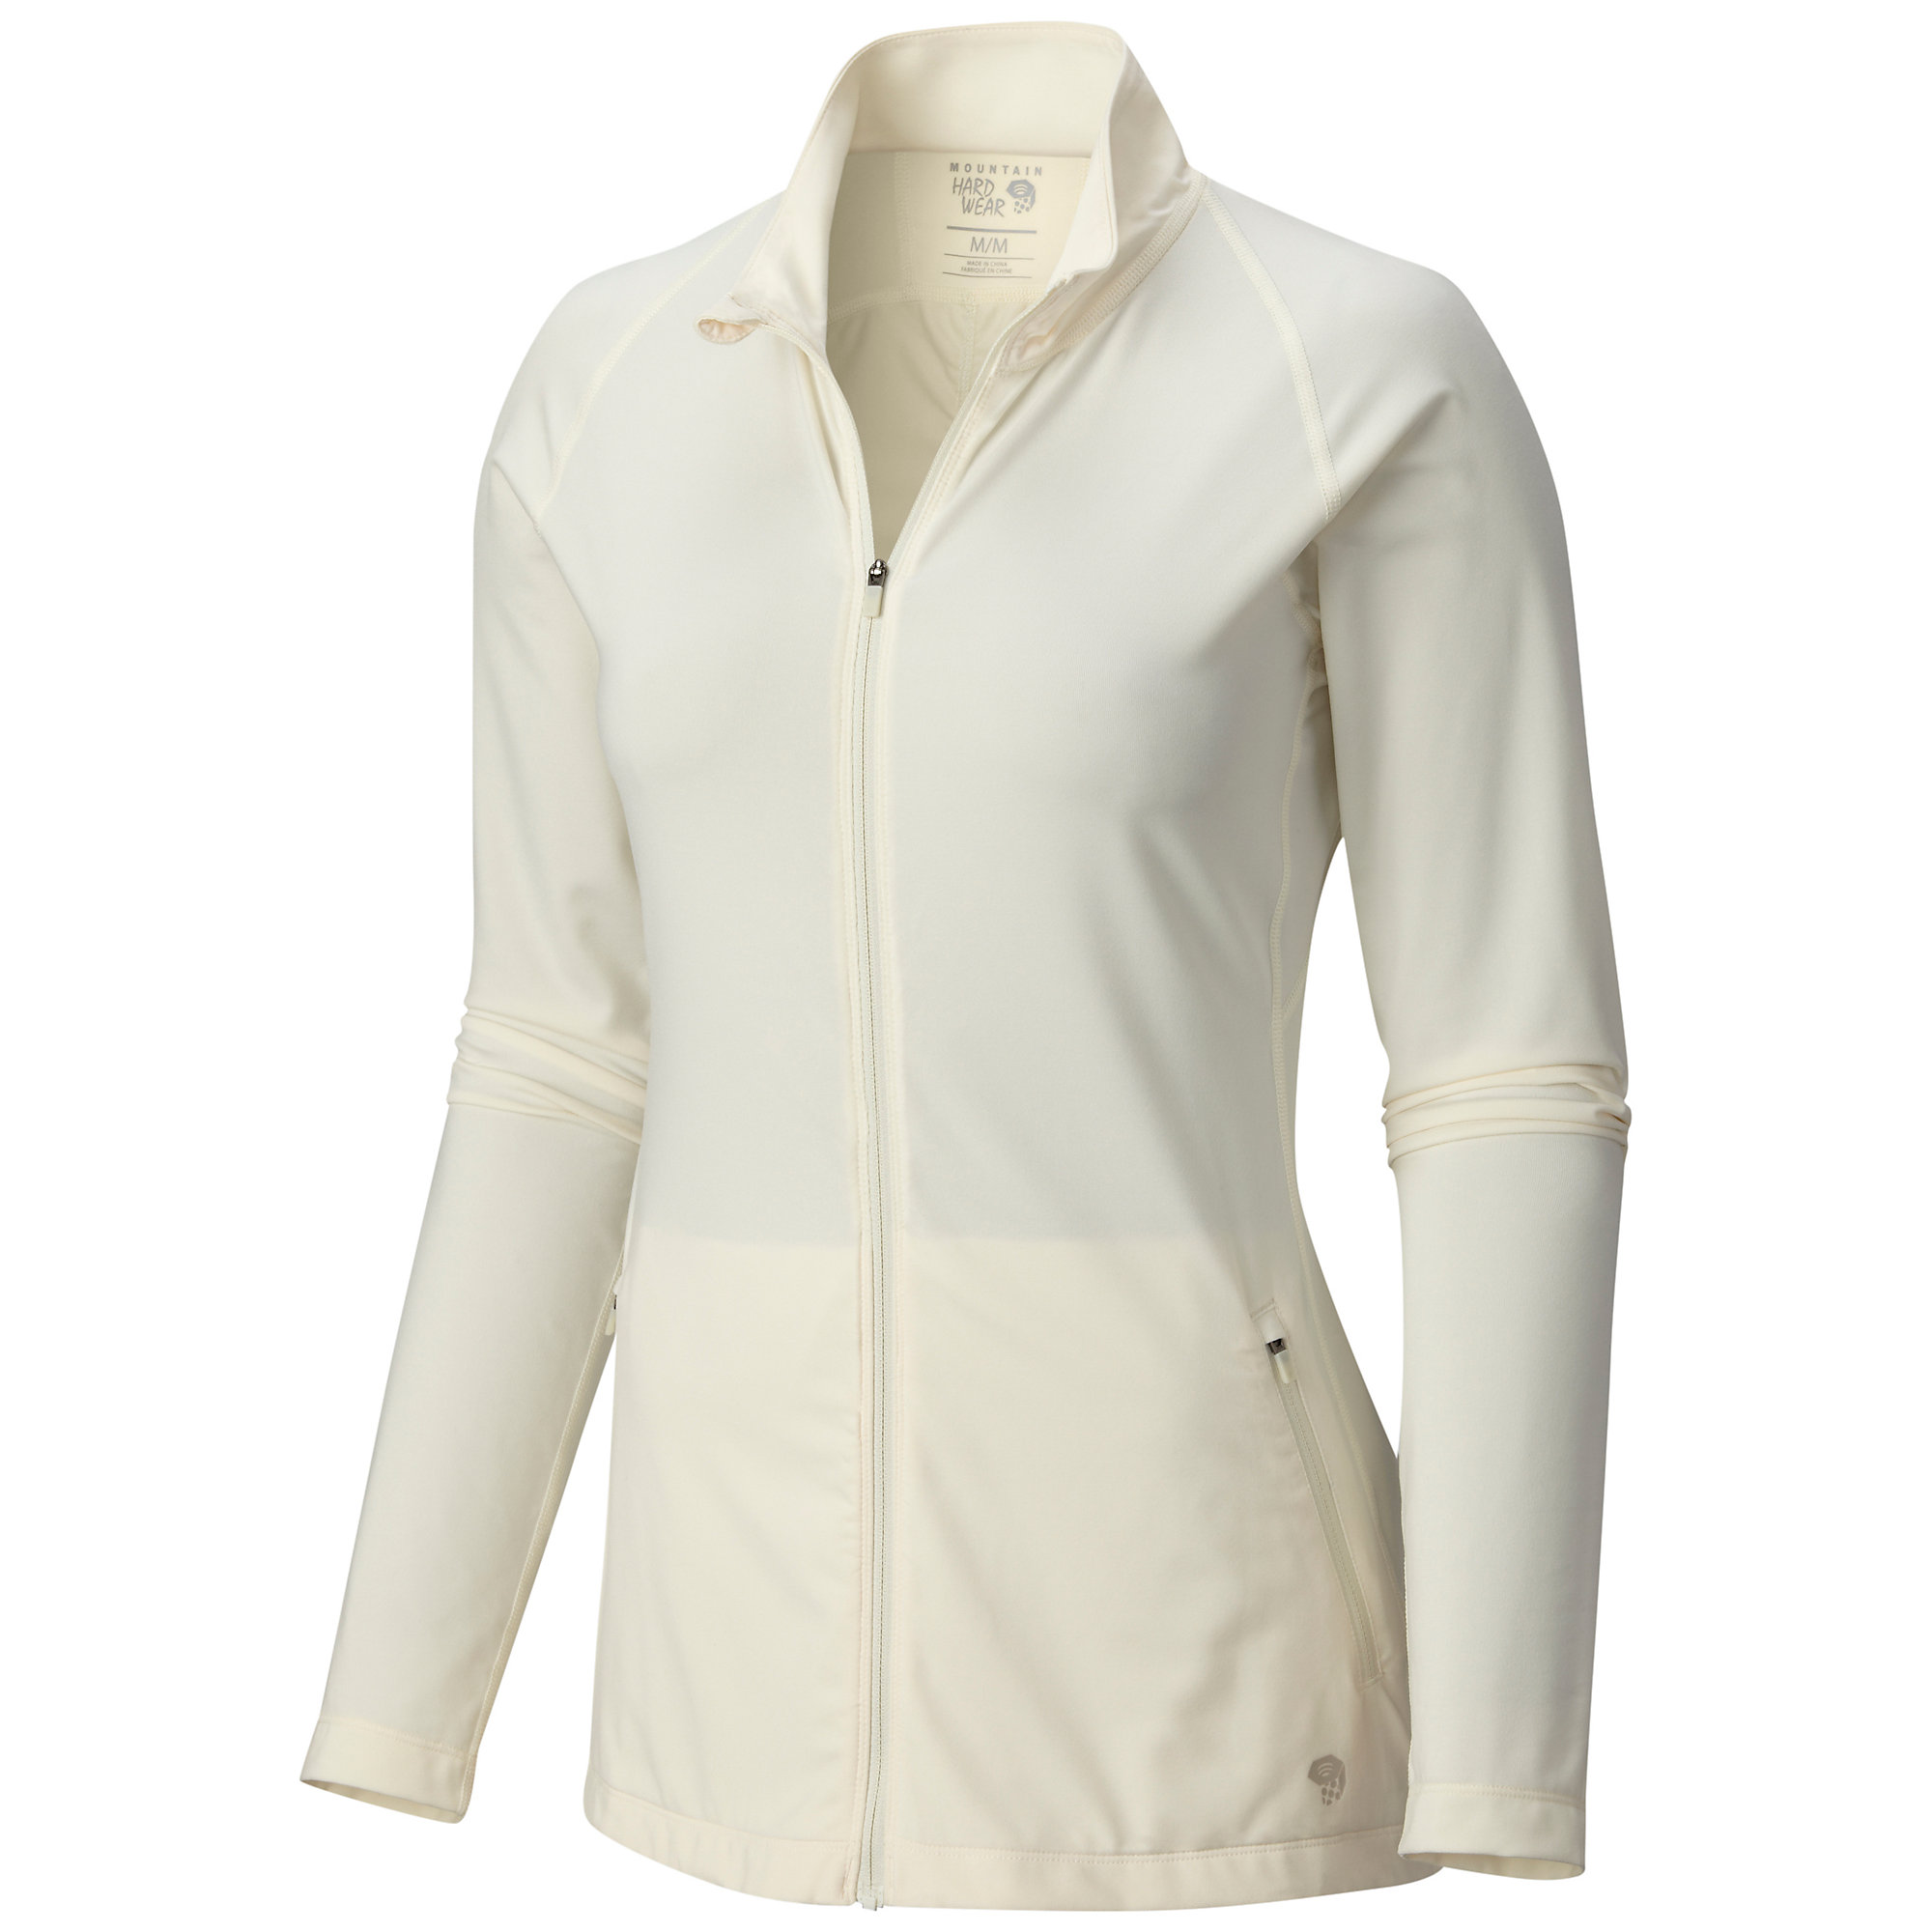 Mountain Hardwear Butterlicious Full Zip Jacket